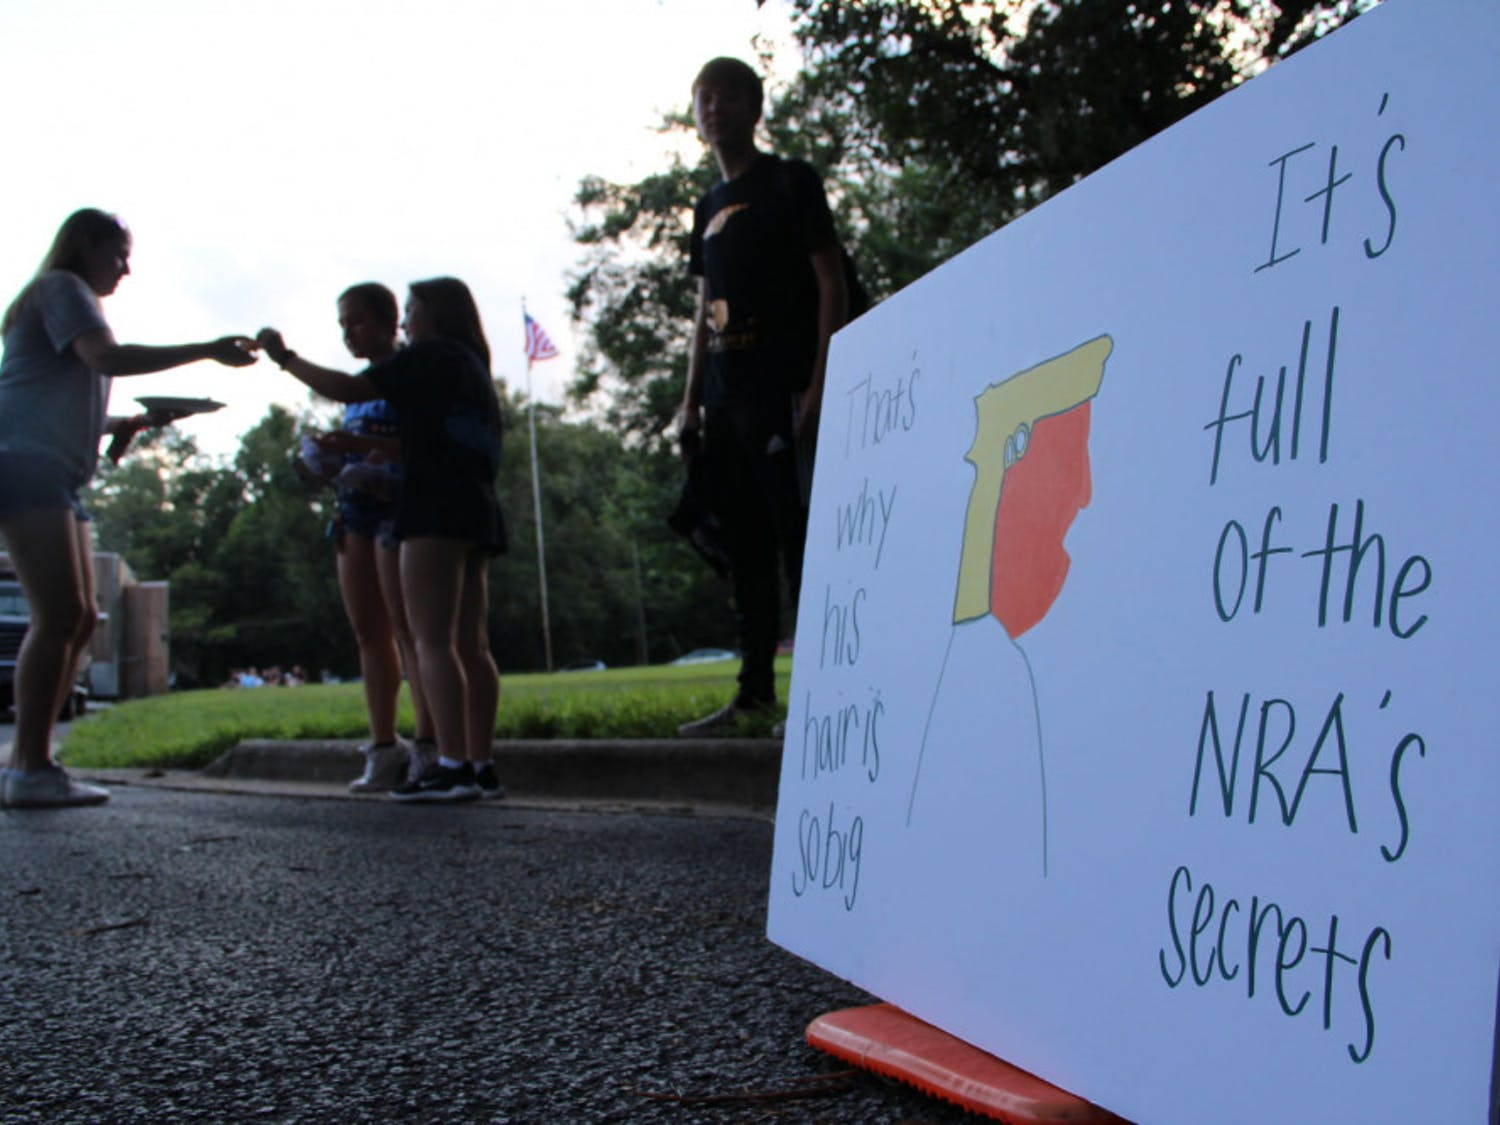 Madison Gore, an 18-year-old UF political science freshman, hangs with friends by her protest sign outside the Gainesville Woman's Club.